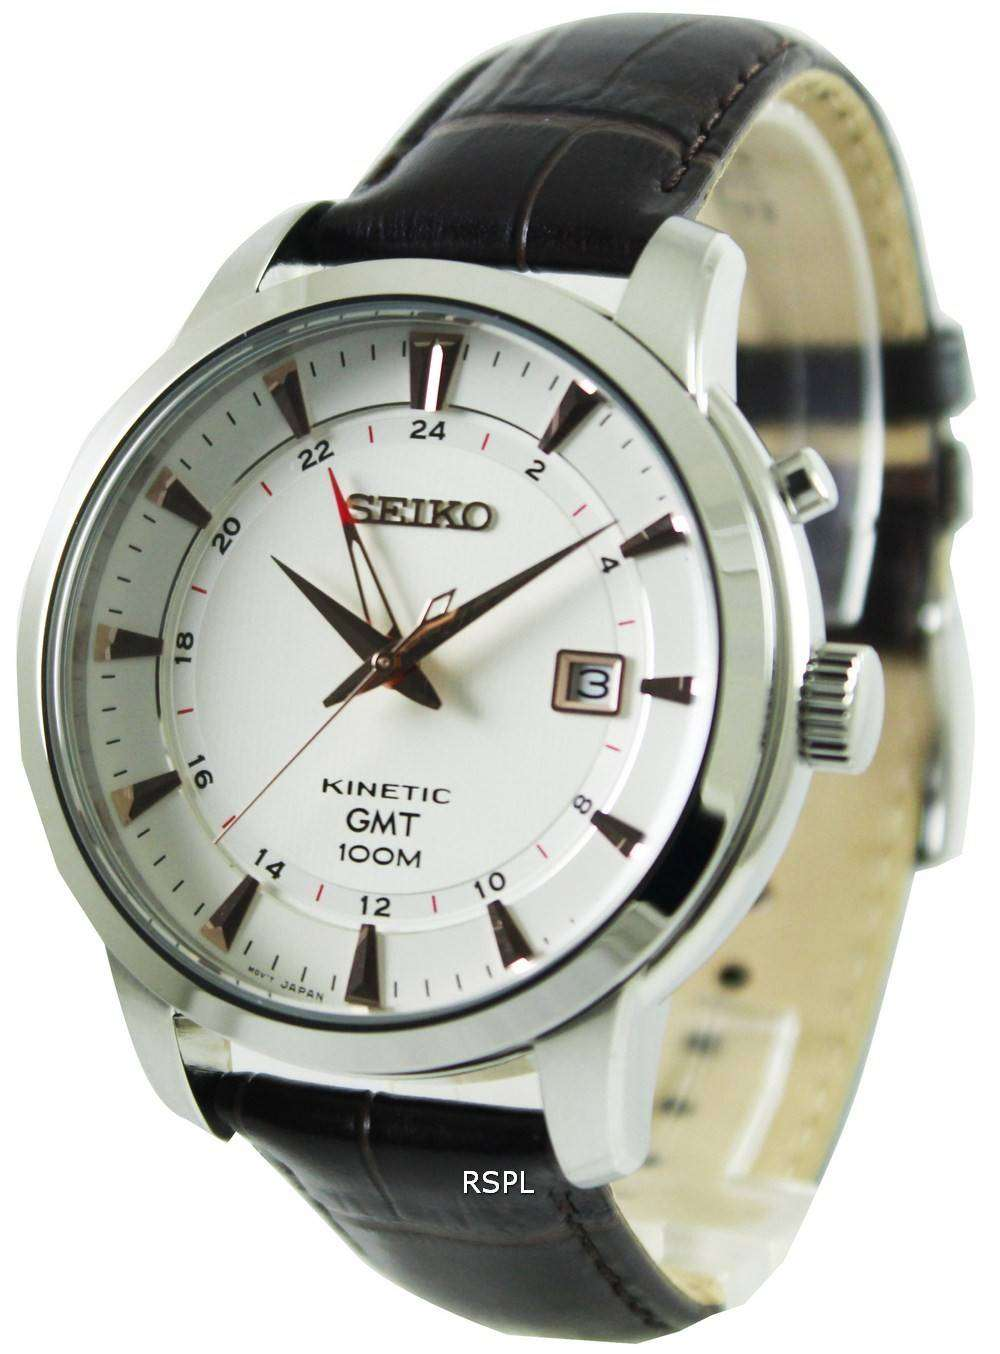 Seiko kinetic gmt sun035p1 sun035p mens watch downunderwatches for Seiko kinetic watches